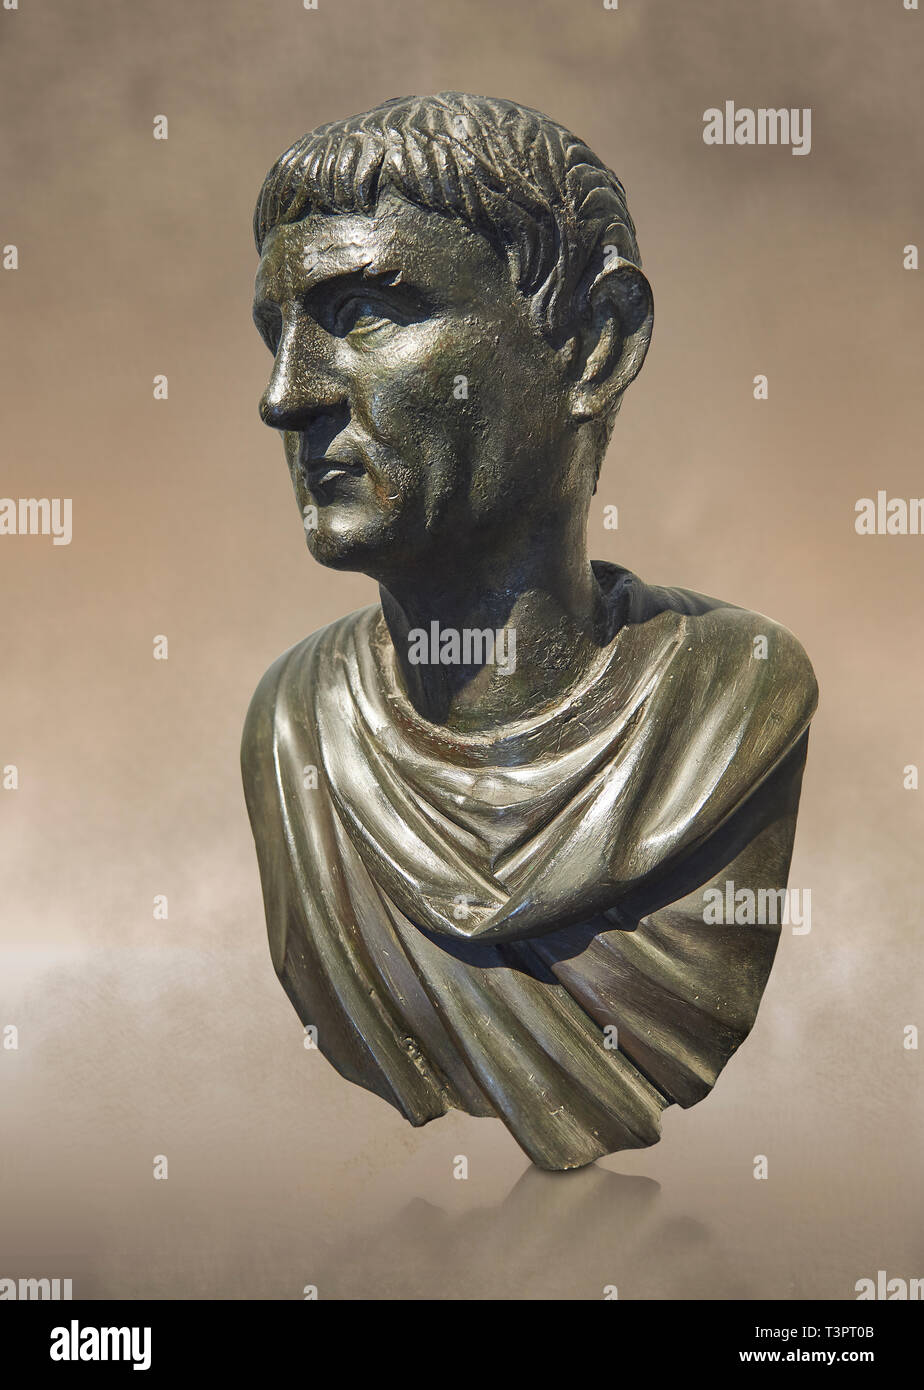 Full view of Roman Bronze sculpture bust known as 'Sylla' from the tablinium of the Villa of the Papyri in Herculaneum, Museum of Archaeology, Italy - Stock Image